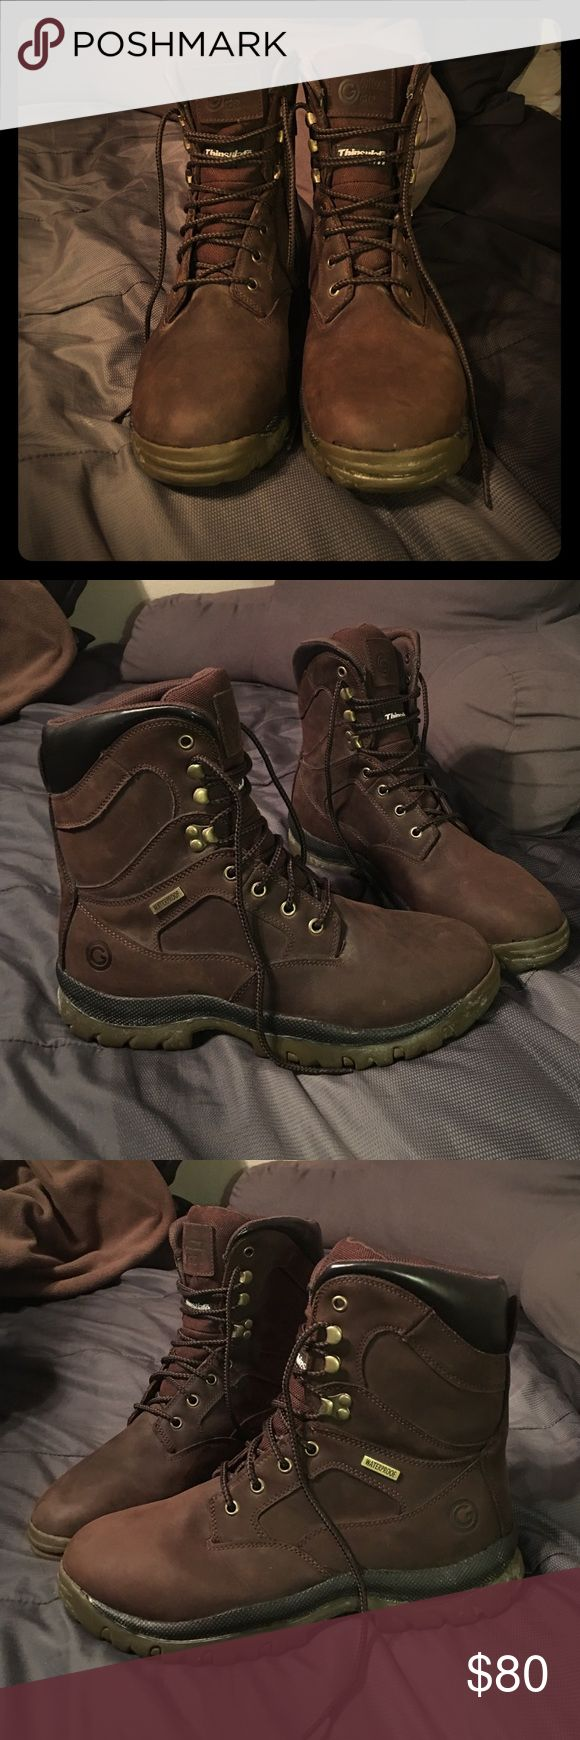 Men's Thinsulate Boots Brand new Thinsulate boots! Never worn before and were kept in salt, that's the reason behind the white coloring you see on the brim of the boot. Beautiful dark brown color and would be great for snow or any type of hiking! Let me know if you have any questions!! Shoes Boots